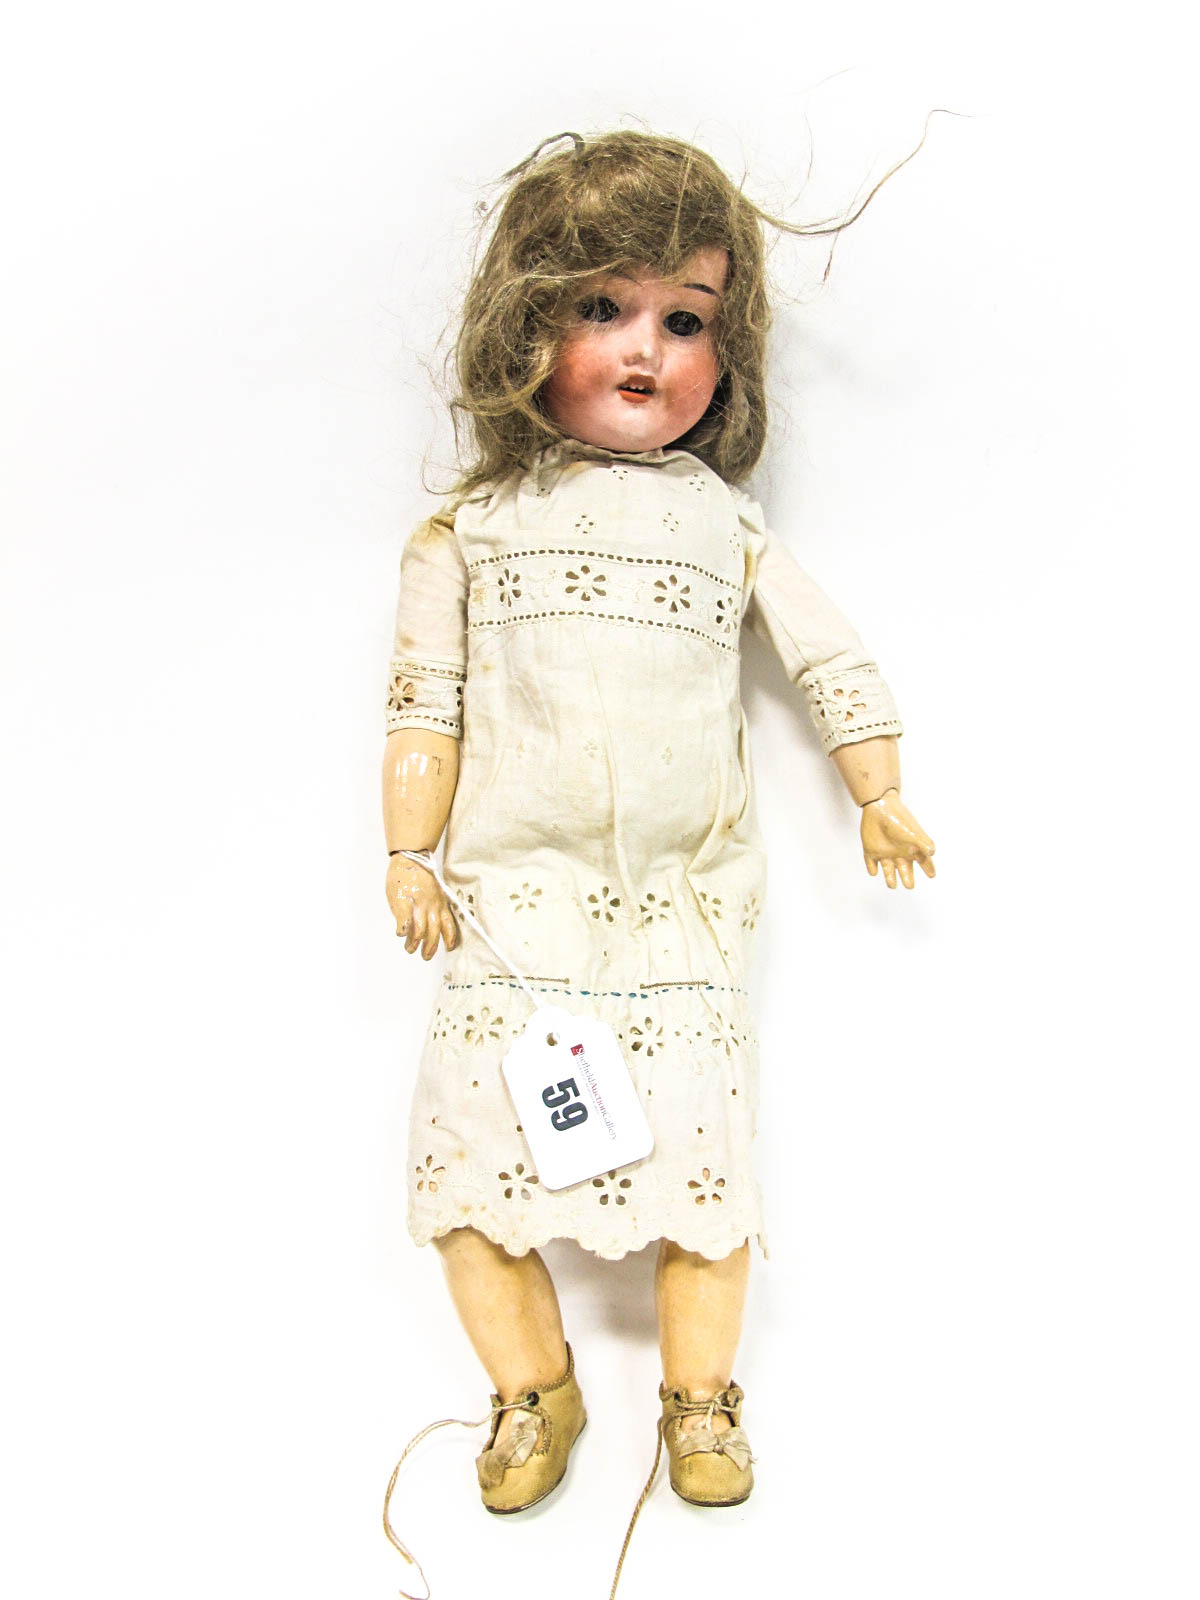 Lot 59 - An Early XX Century Bisque Headed Doll, Simon Halbig, stamped 1909, sleepy eyes, open mouth with